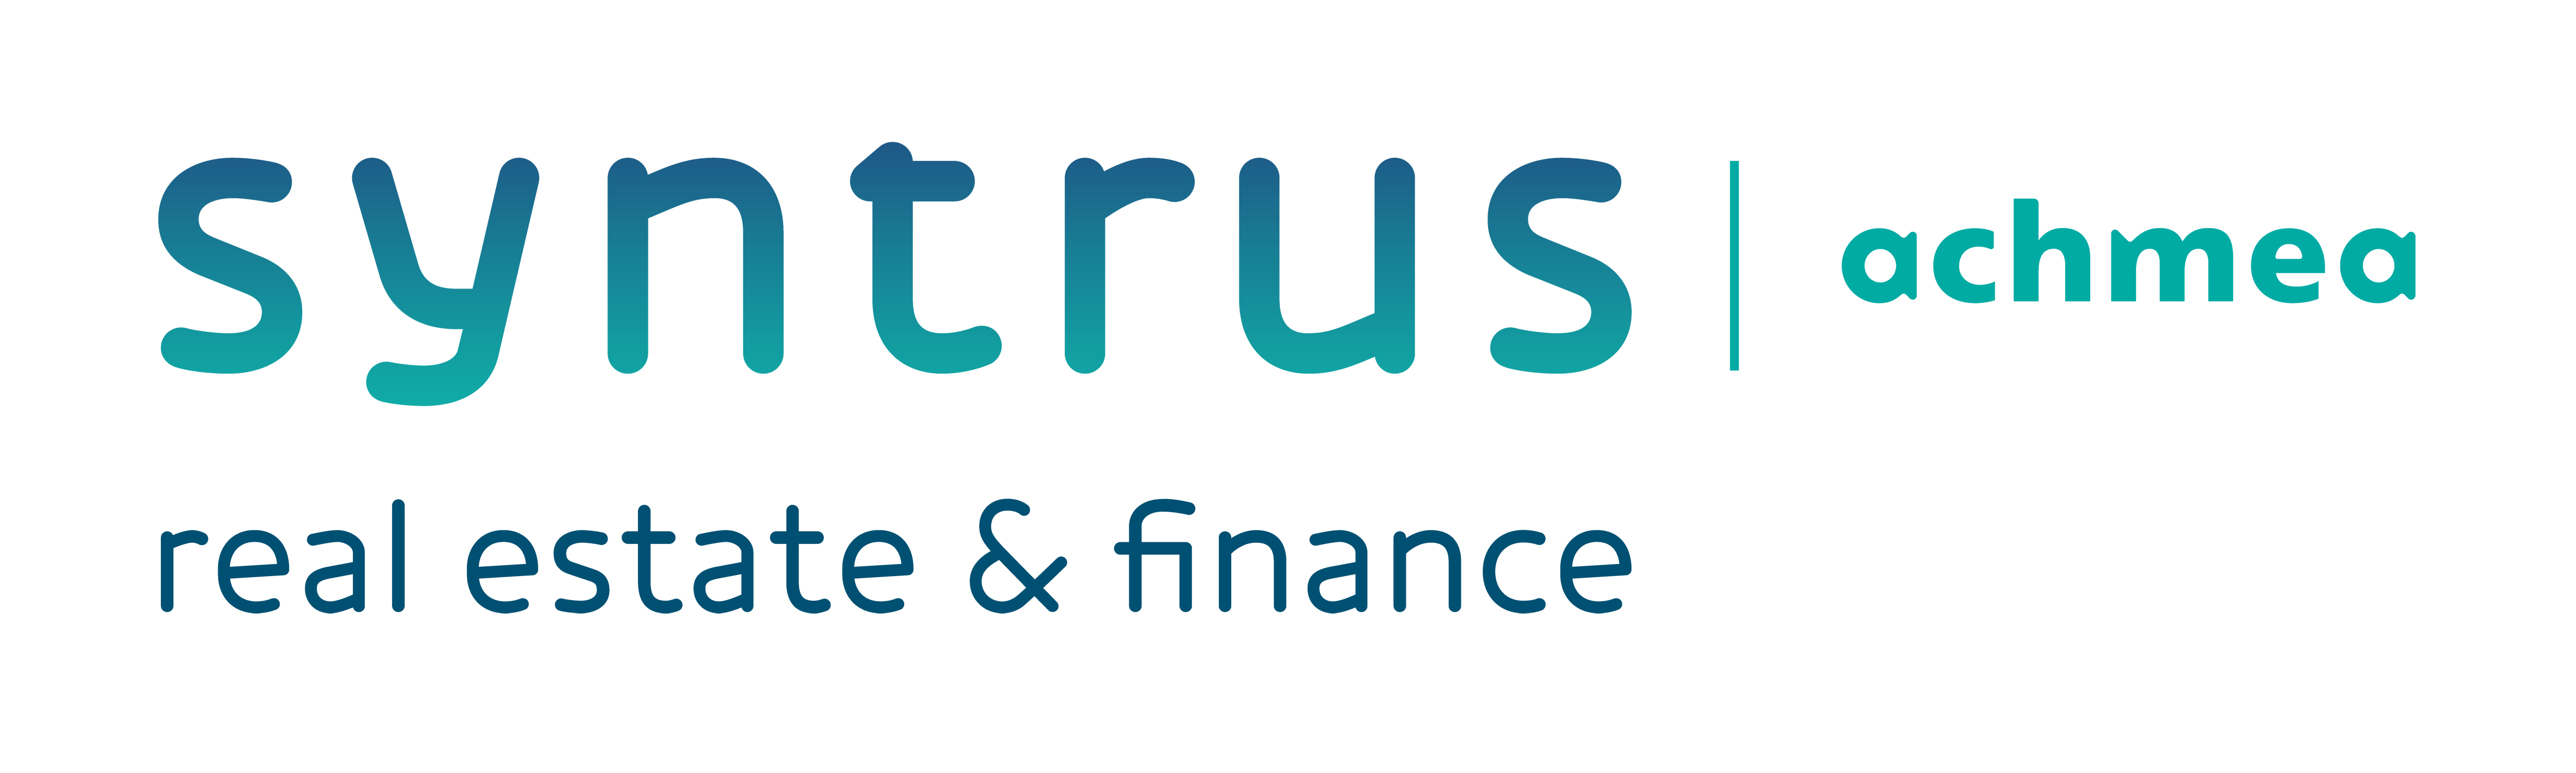 Syntrus-Achmea-Real-Estate-Finance_logo